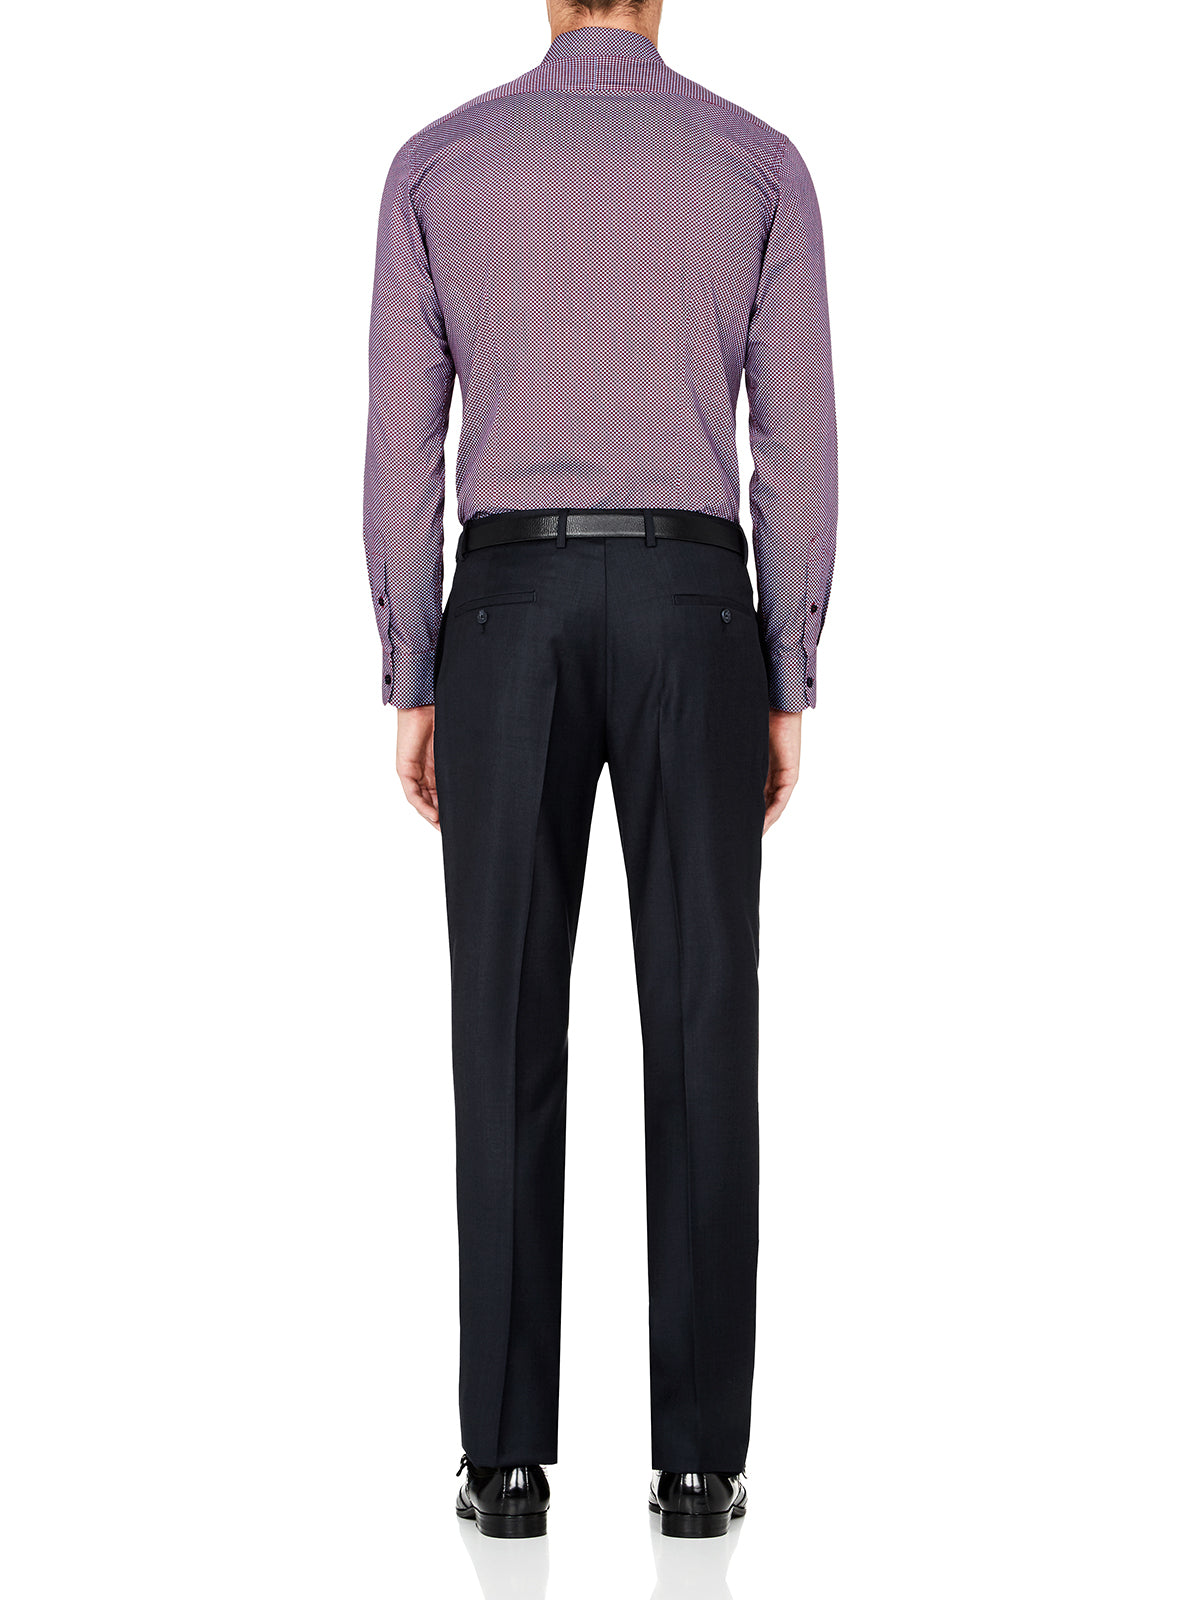 HOPKINS WOOL TROUSERS GUNMETAL